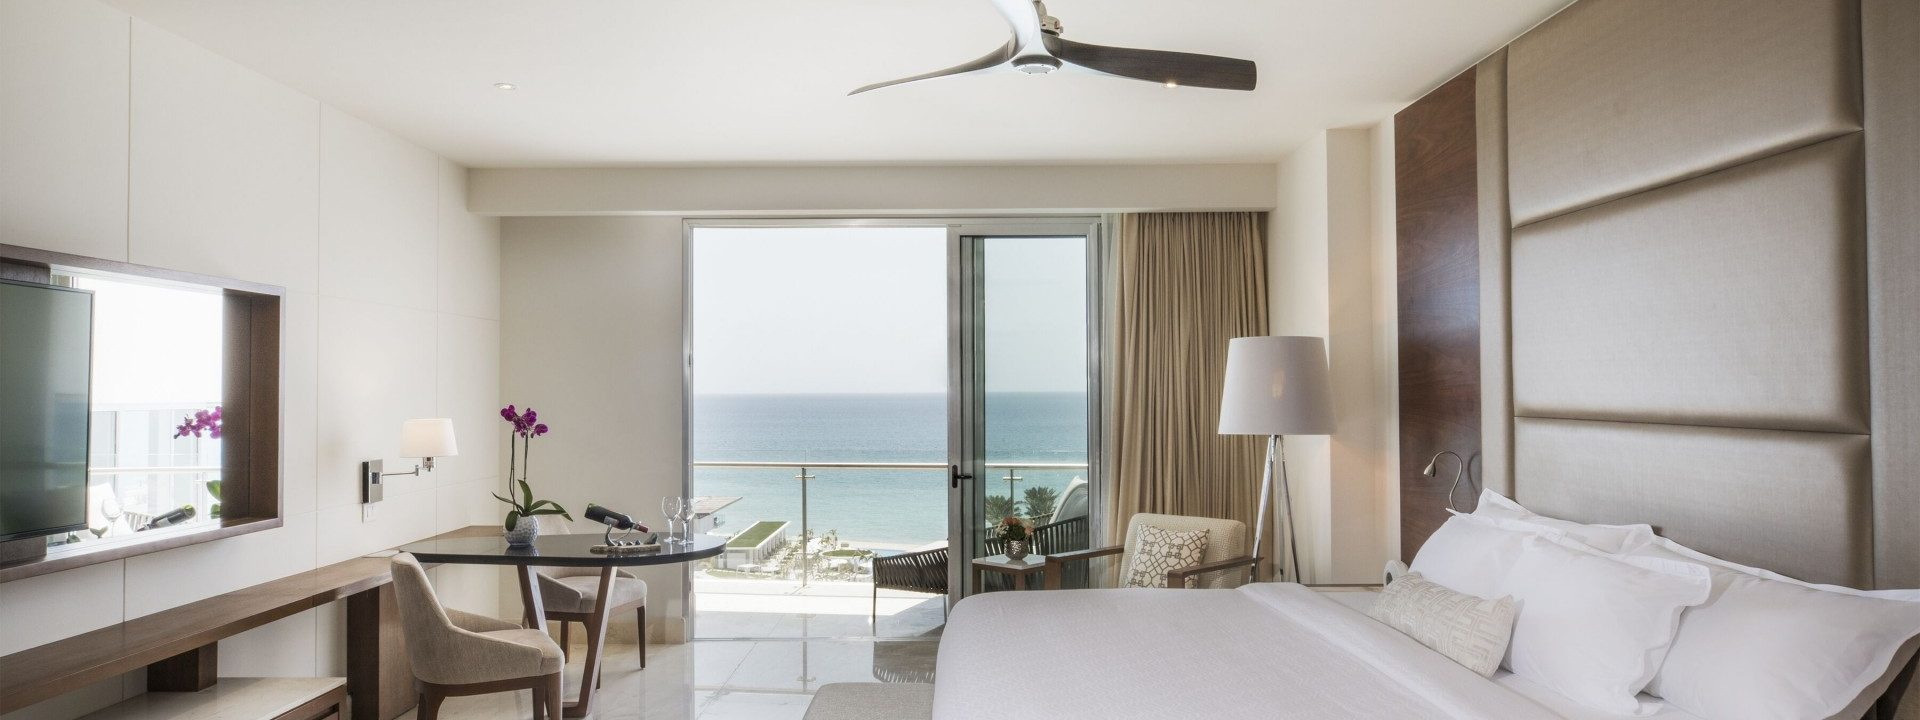 Le Blanc Spa Resort makes a white-hot debut in Los Cabos